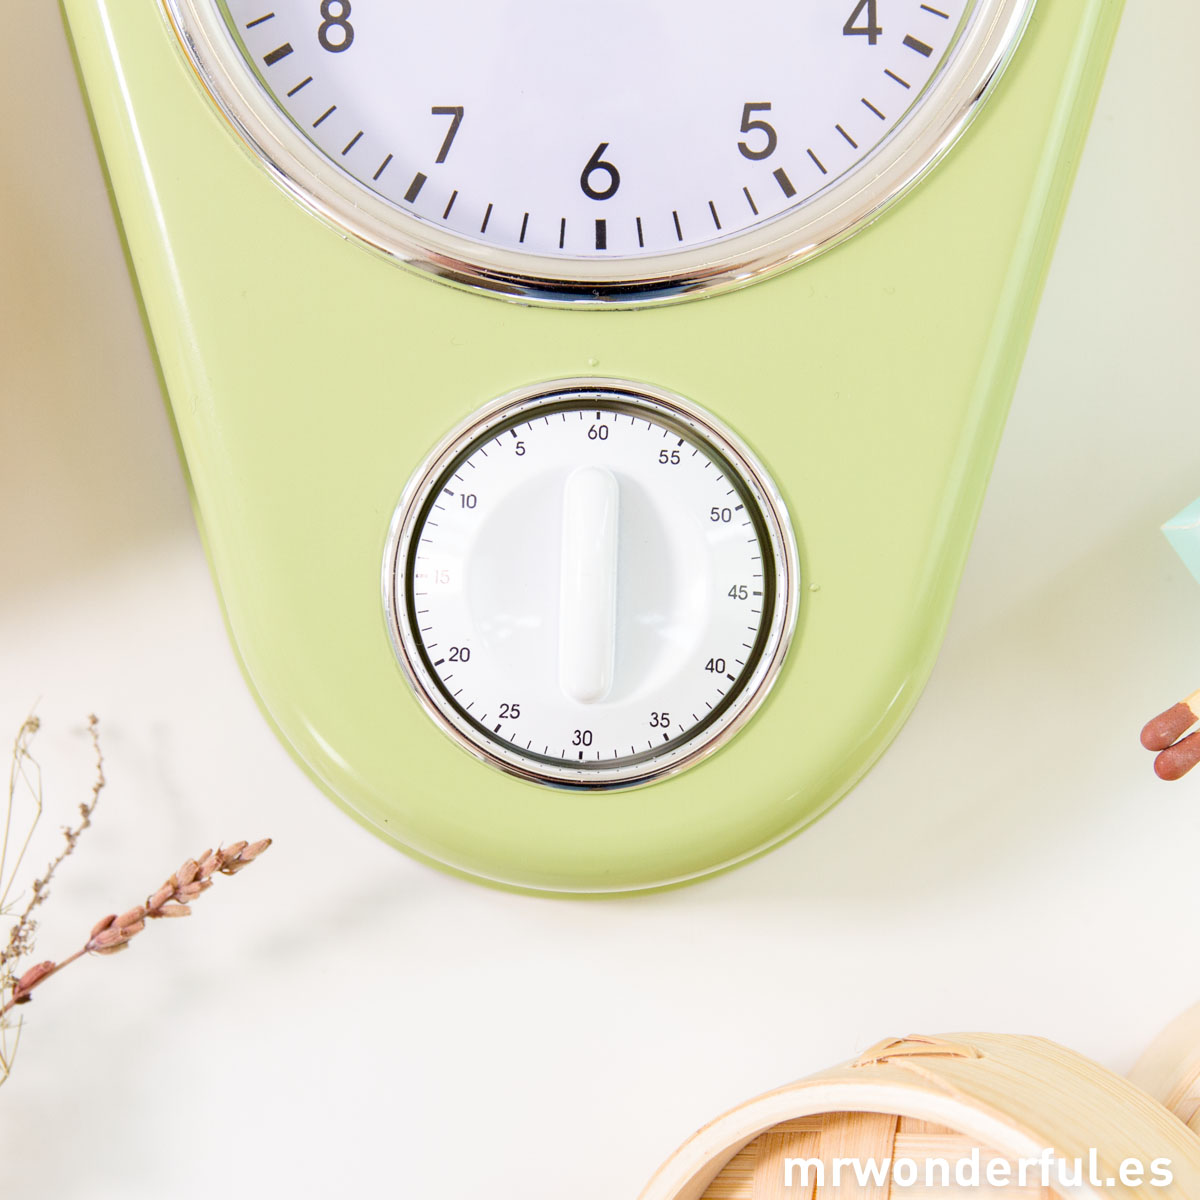 Mr.Wonderful reloj de cocina verde con temporizador